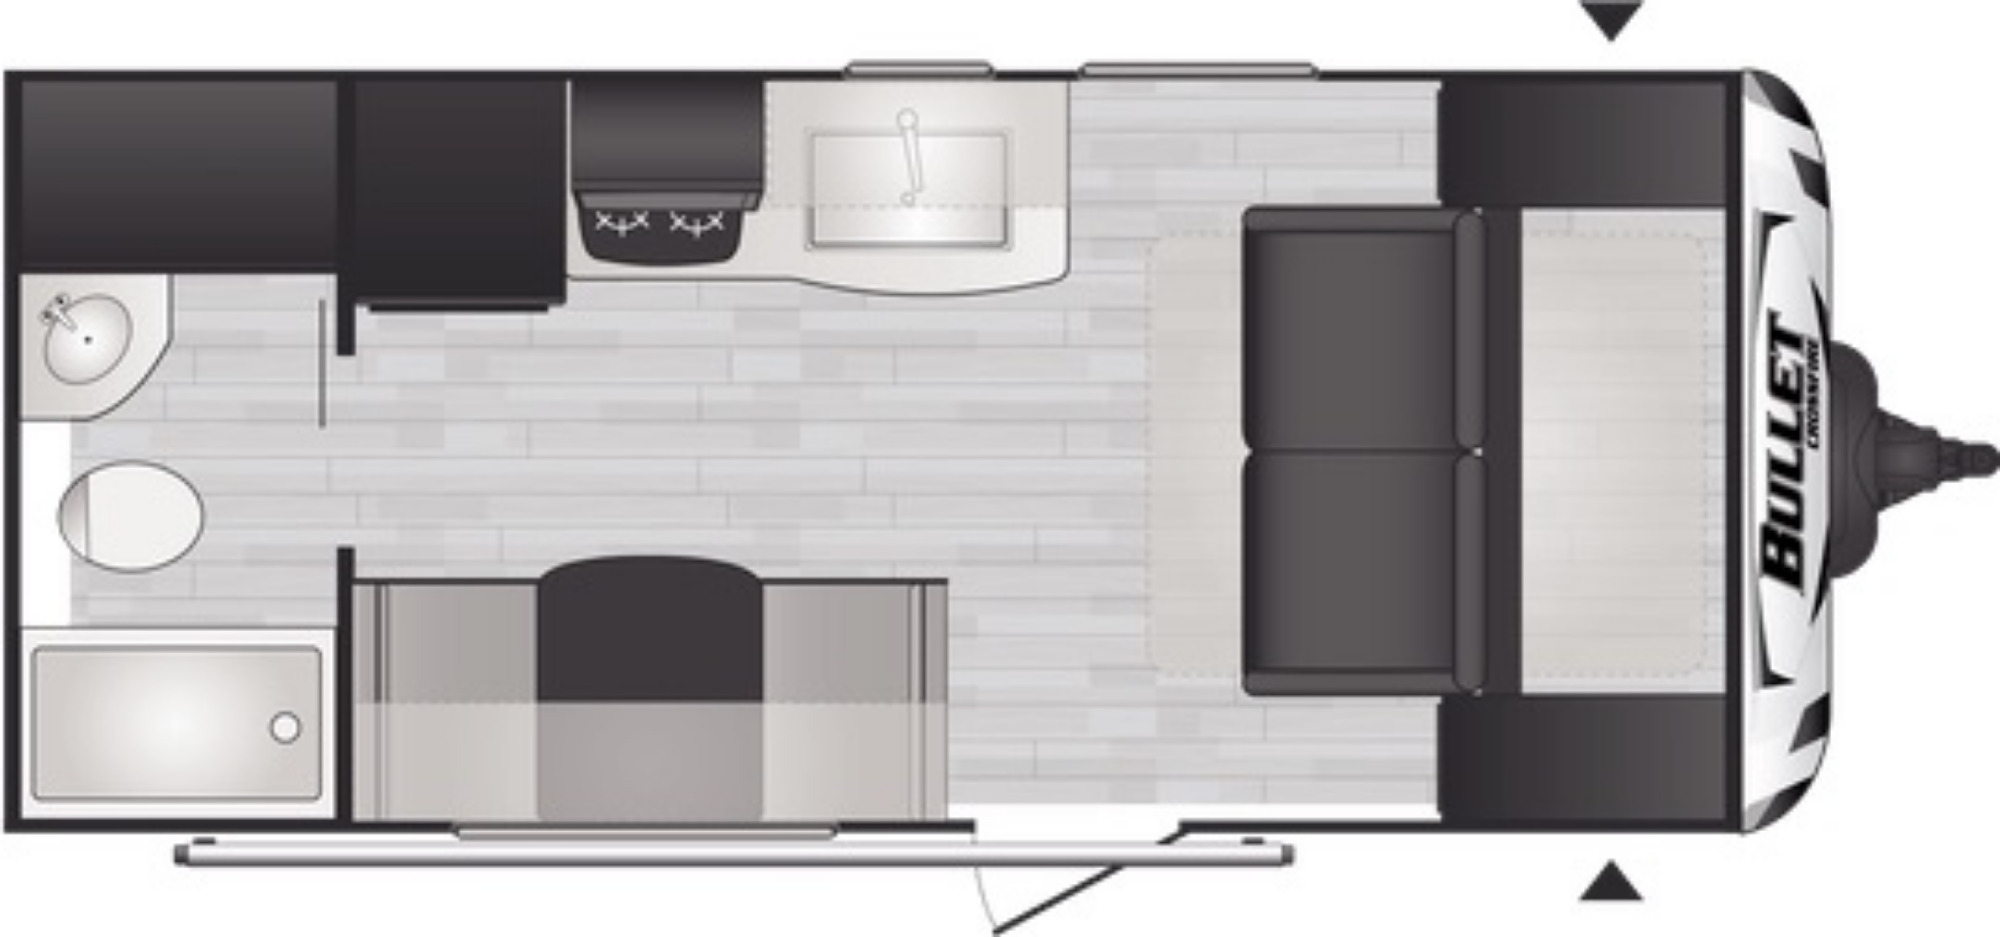 View Floor Plan for 2021 KEYSTONE BULLET CROSSFIRE 1800RB